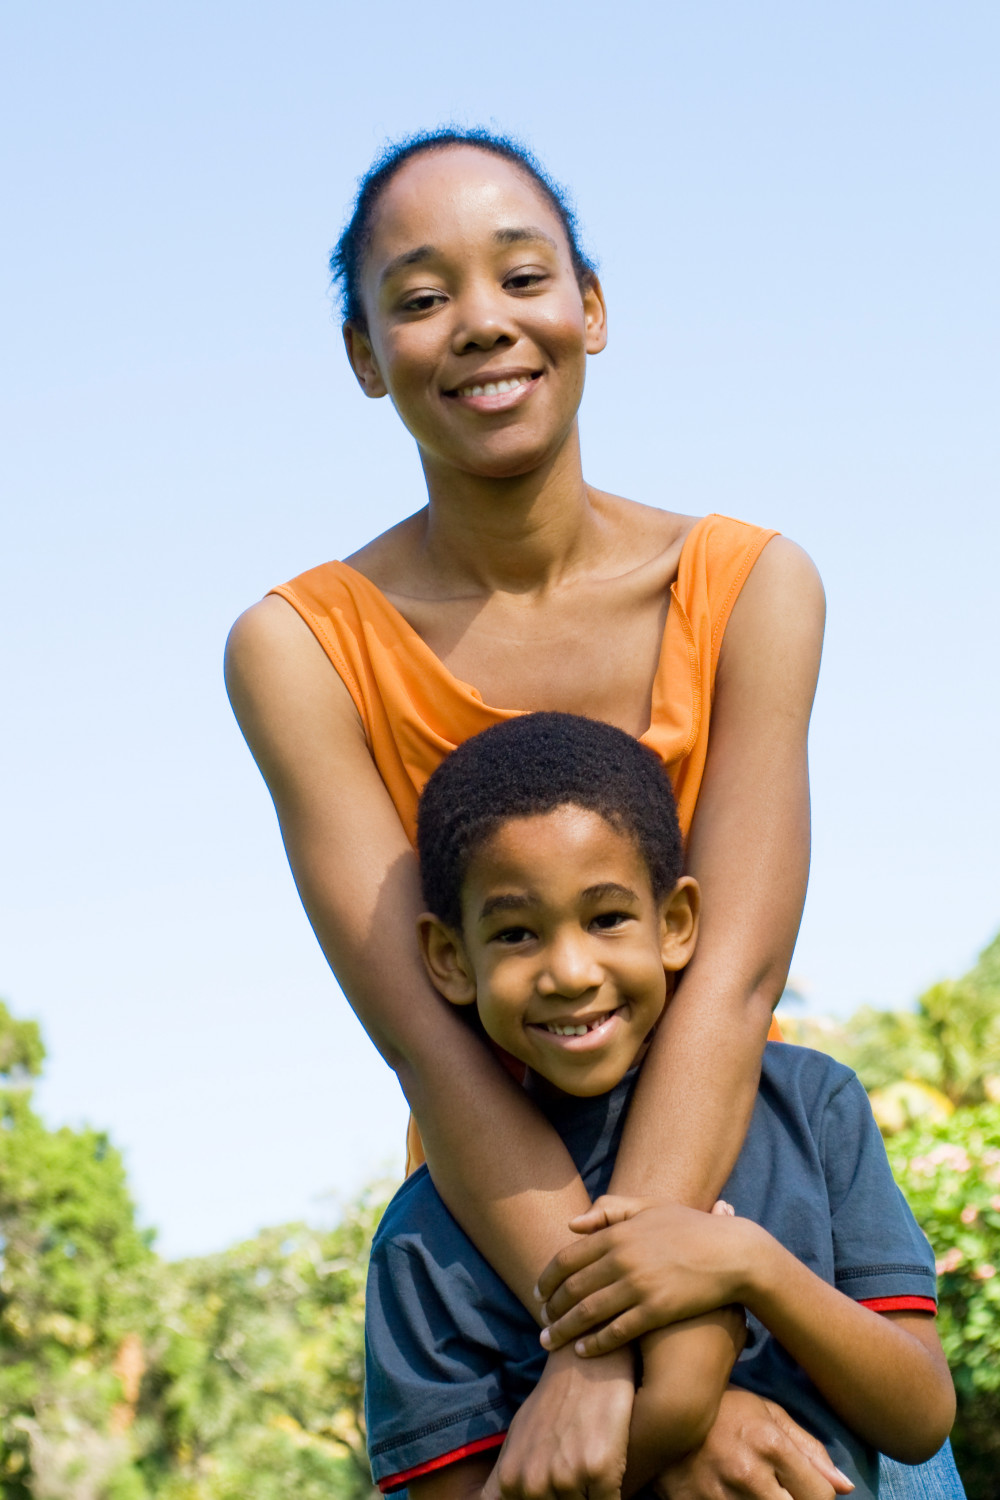 matinicus single parent personals The truth of the matter is, a single mom can date whoever they want, whenever they want if you're a woman just starting to date a guy without kids, here are a few pieces of advice to help you navigate the new relationship.